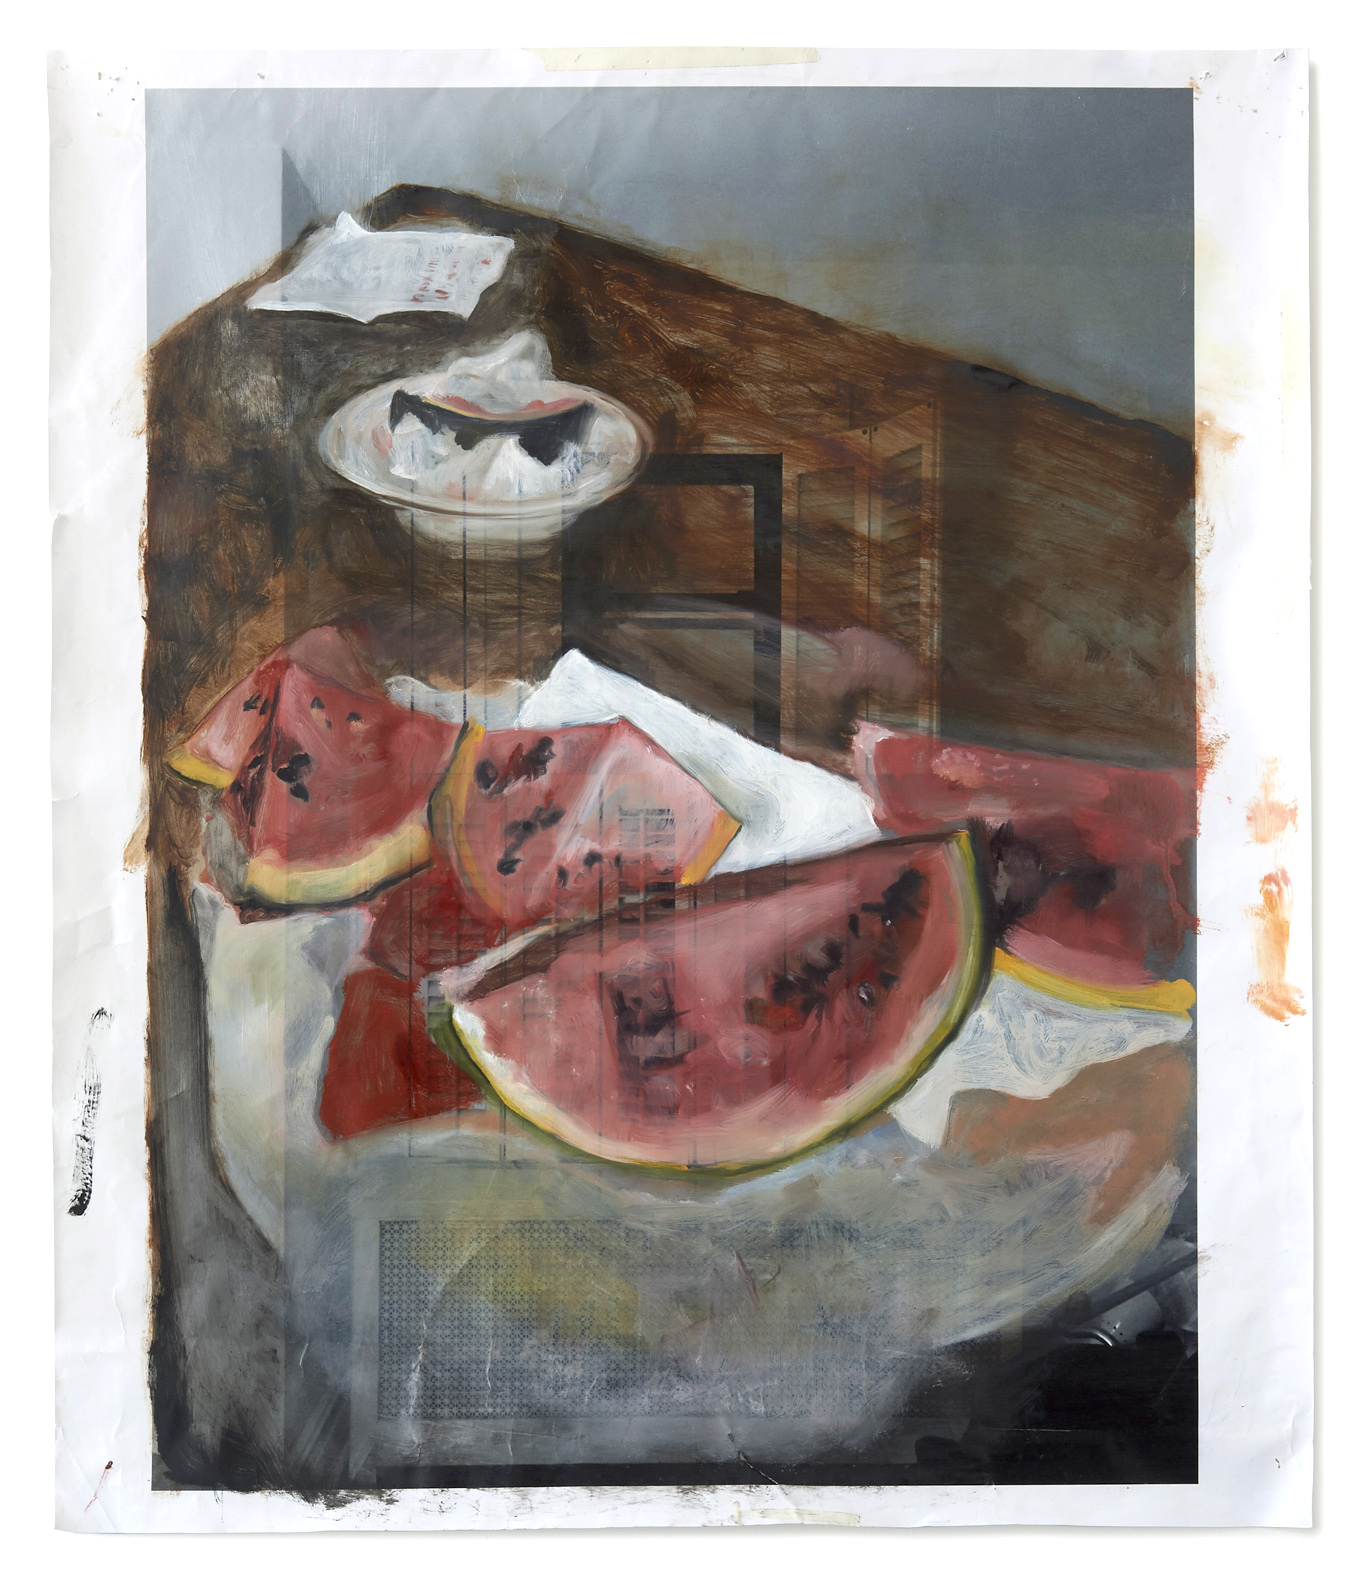 Watermelon in Living Quarters    Oil on archival inkjet print  28x24